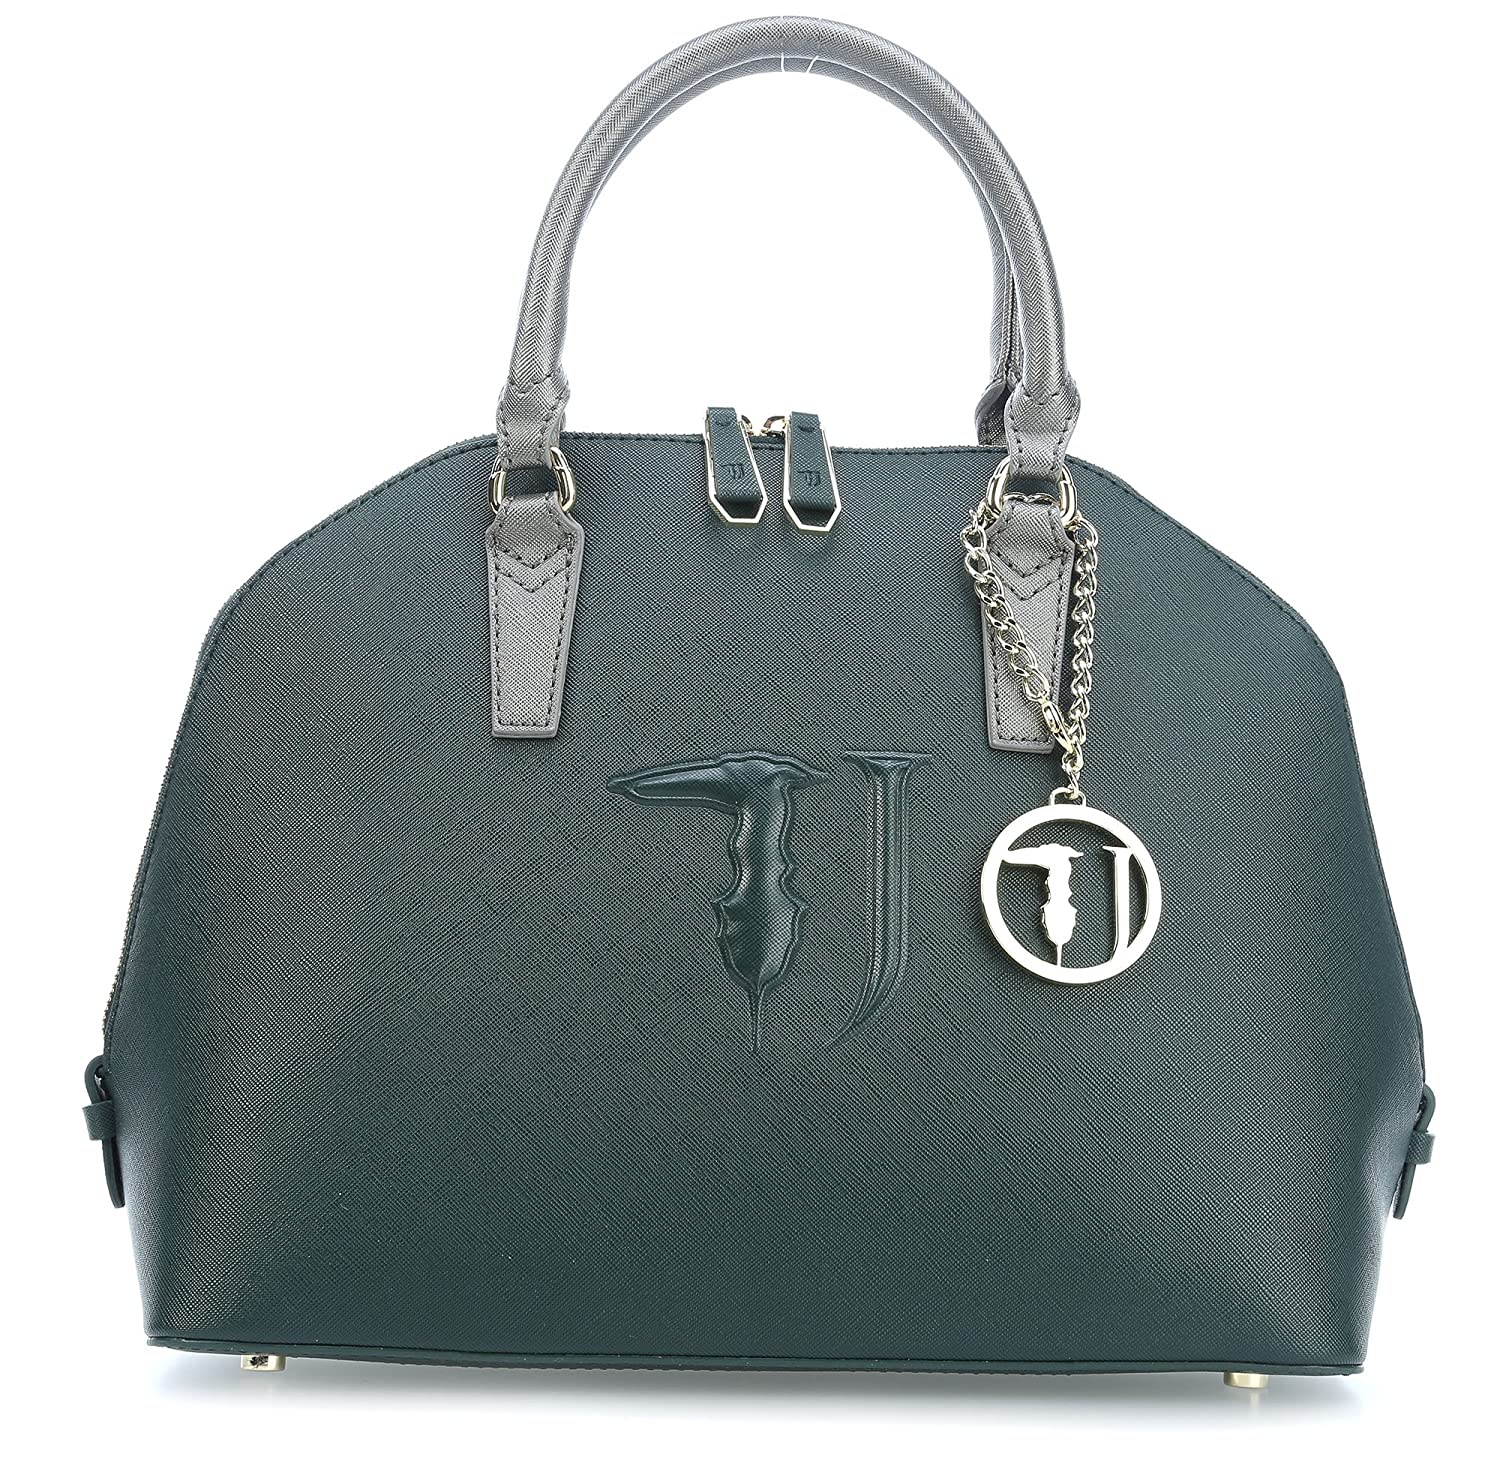 Trussardi Jeans Ischia Ecoleather Handbag forest: Amazon.co